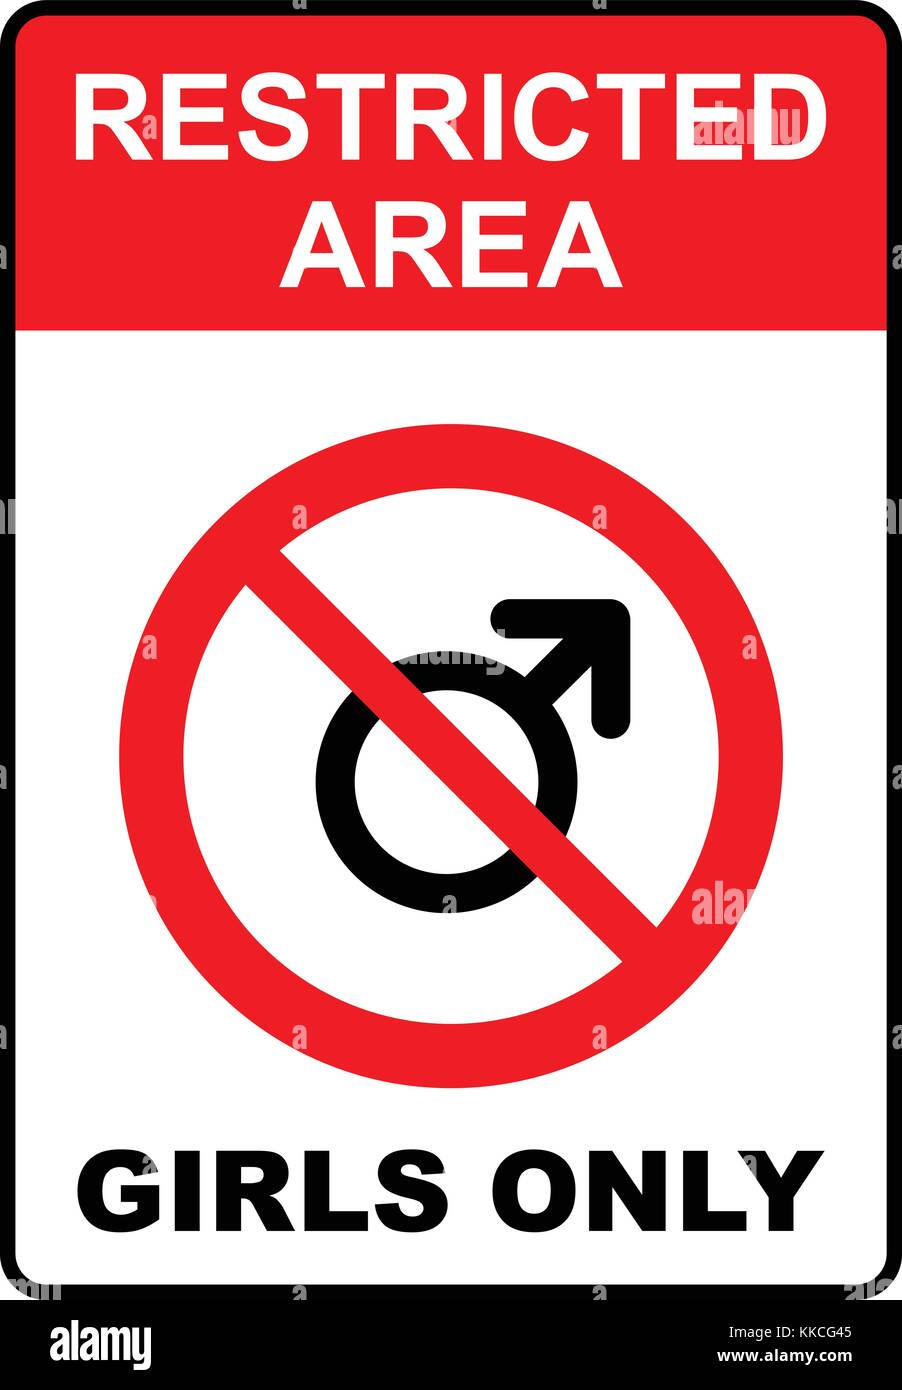 Restricted area, girls only sign, vector illustration. - Stock Image